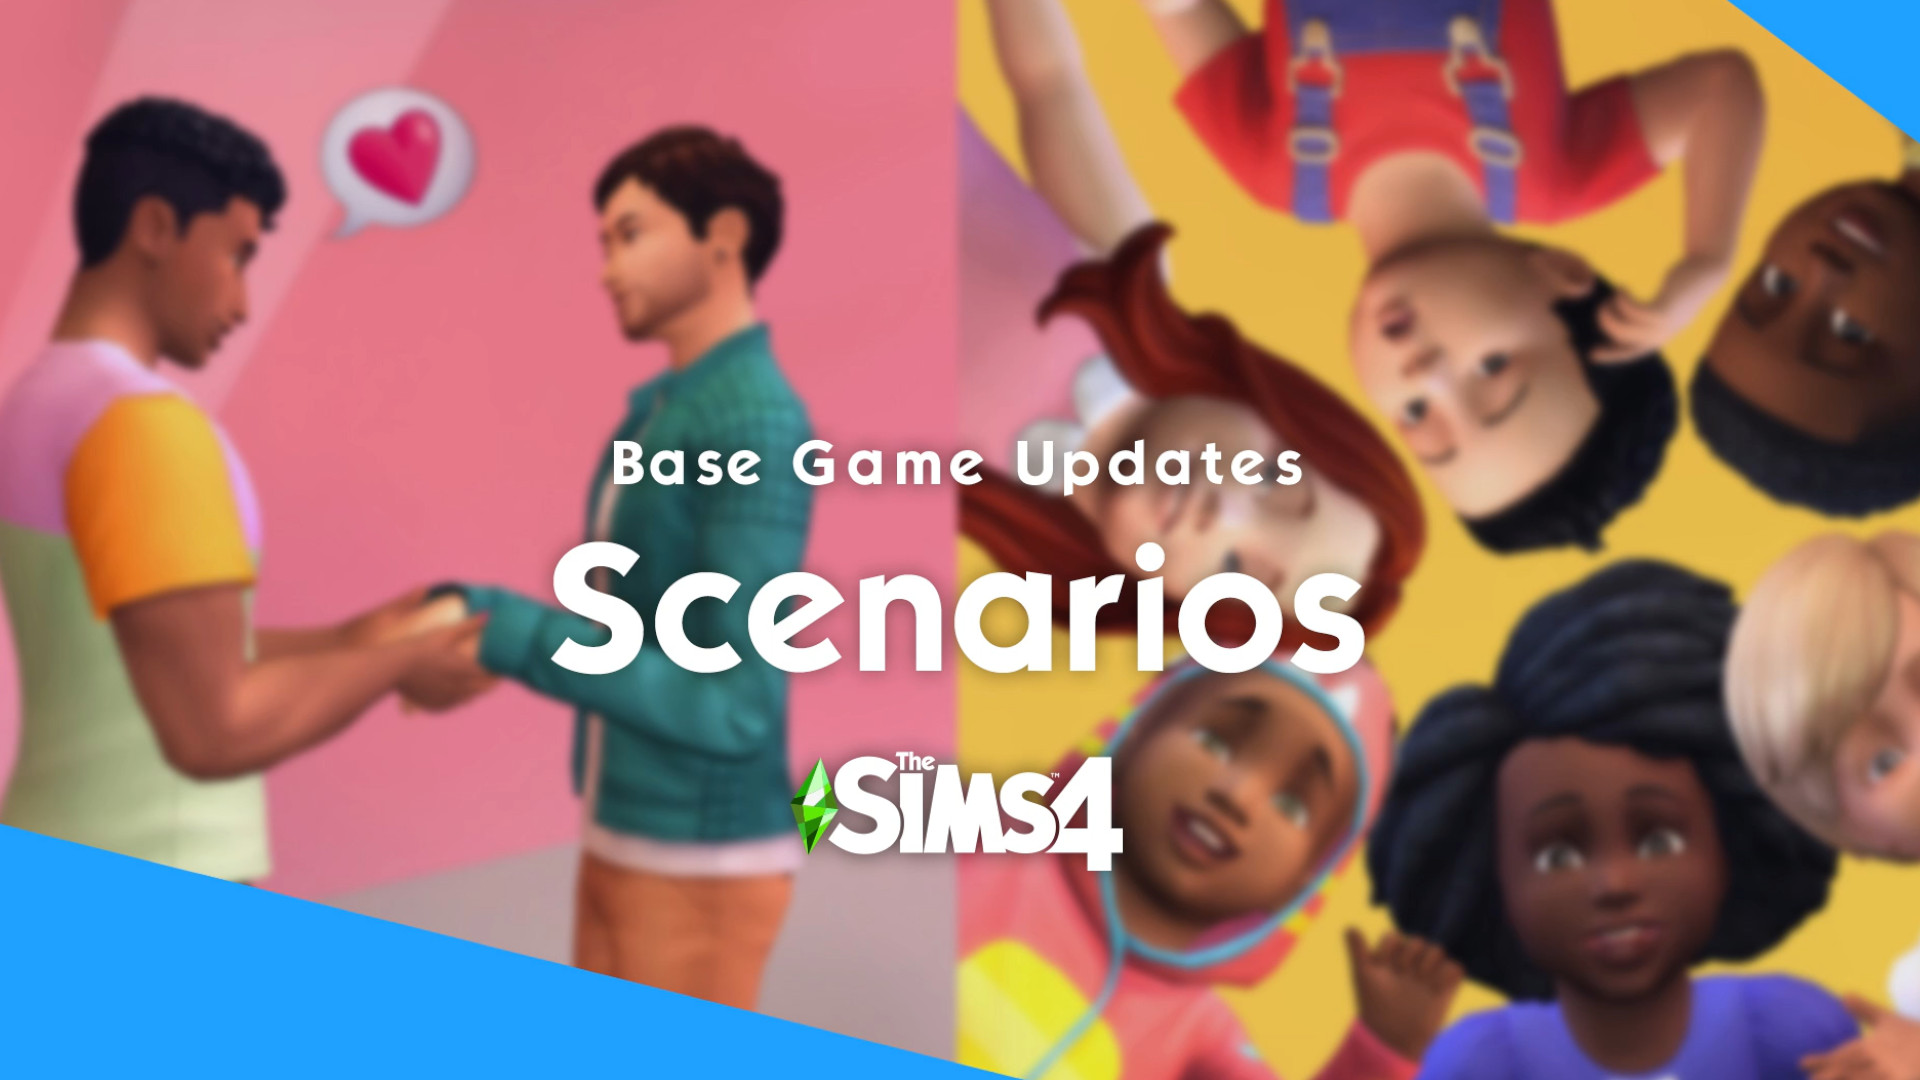 The Sims 4's next free game update adds challenge scenarios